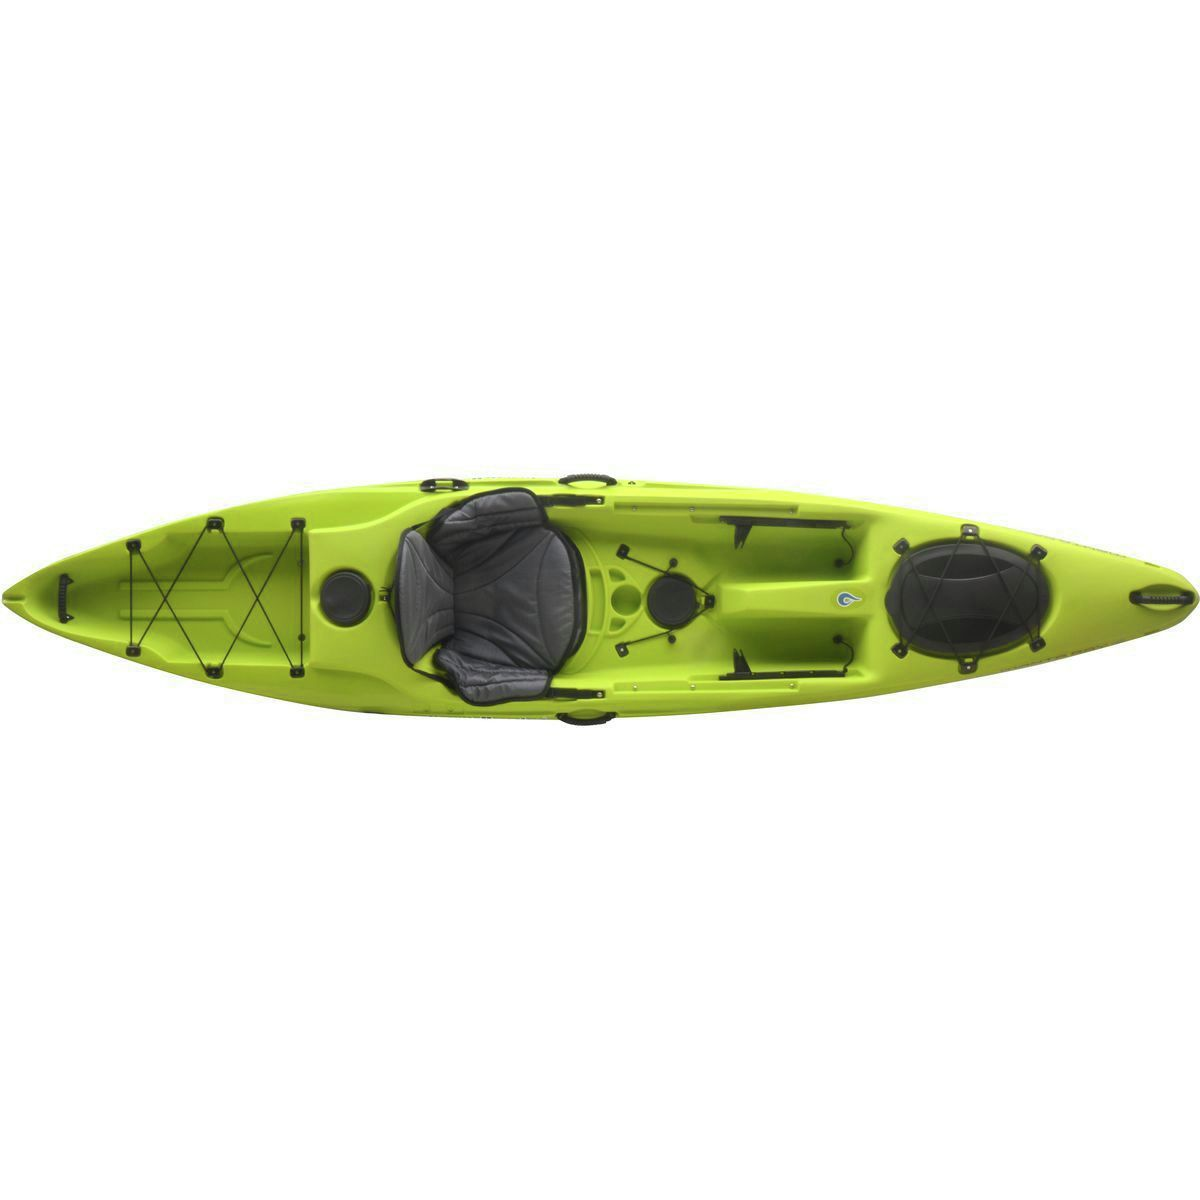 Liquidlogic Kayaks Manta Ray 12 Kayak  Sit On Top Green One Size